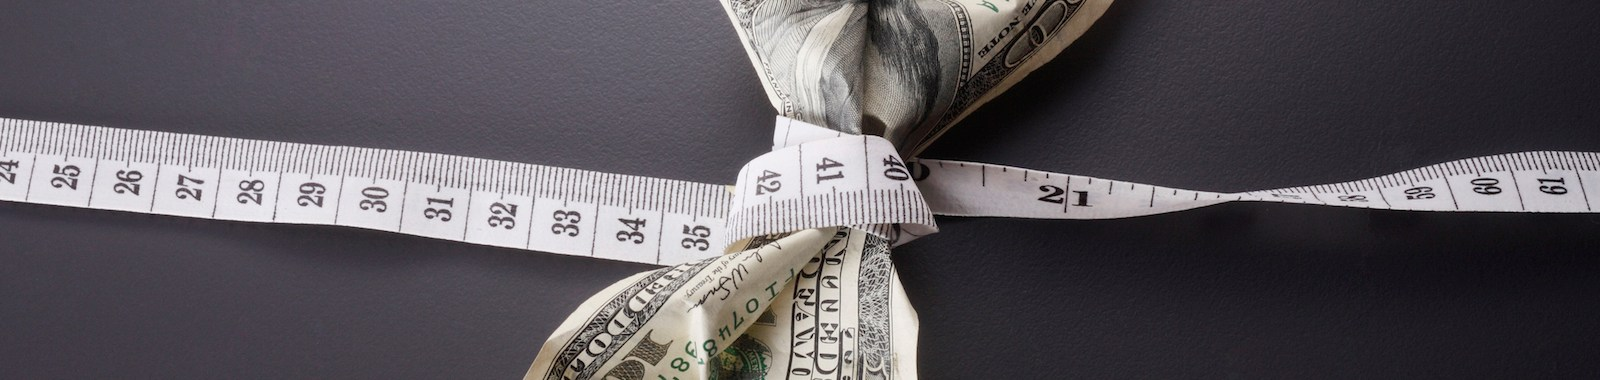 close up of the us currency and tape measure